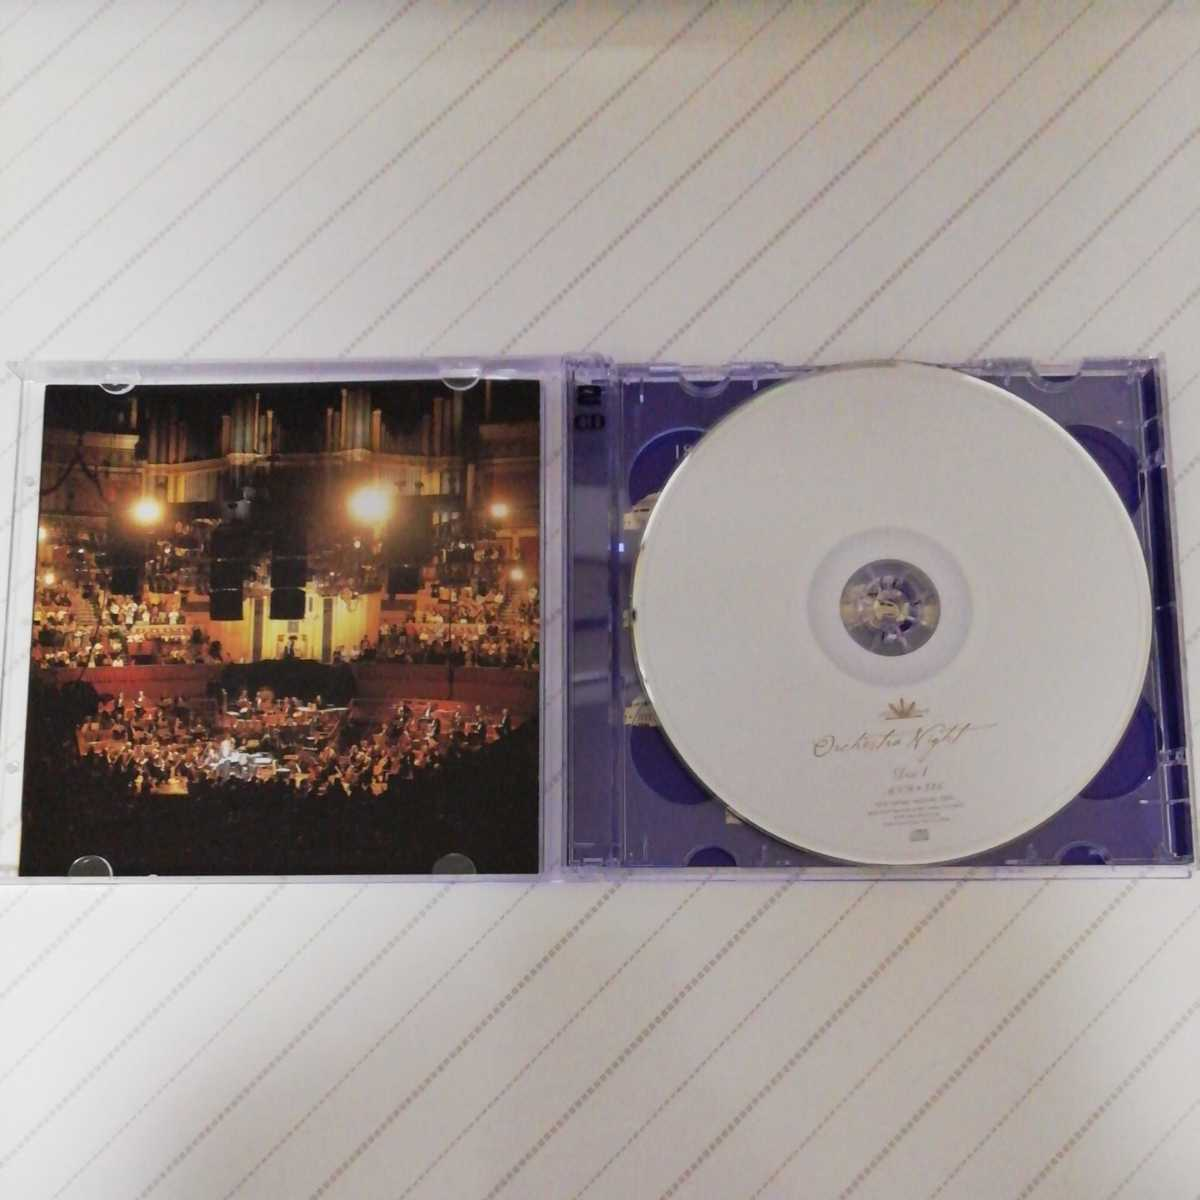 ERIC CLAPTON ORCHESTRA NIGHT MVR(2CD) エリック・クラプトン